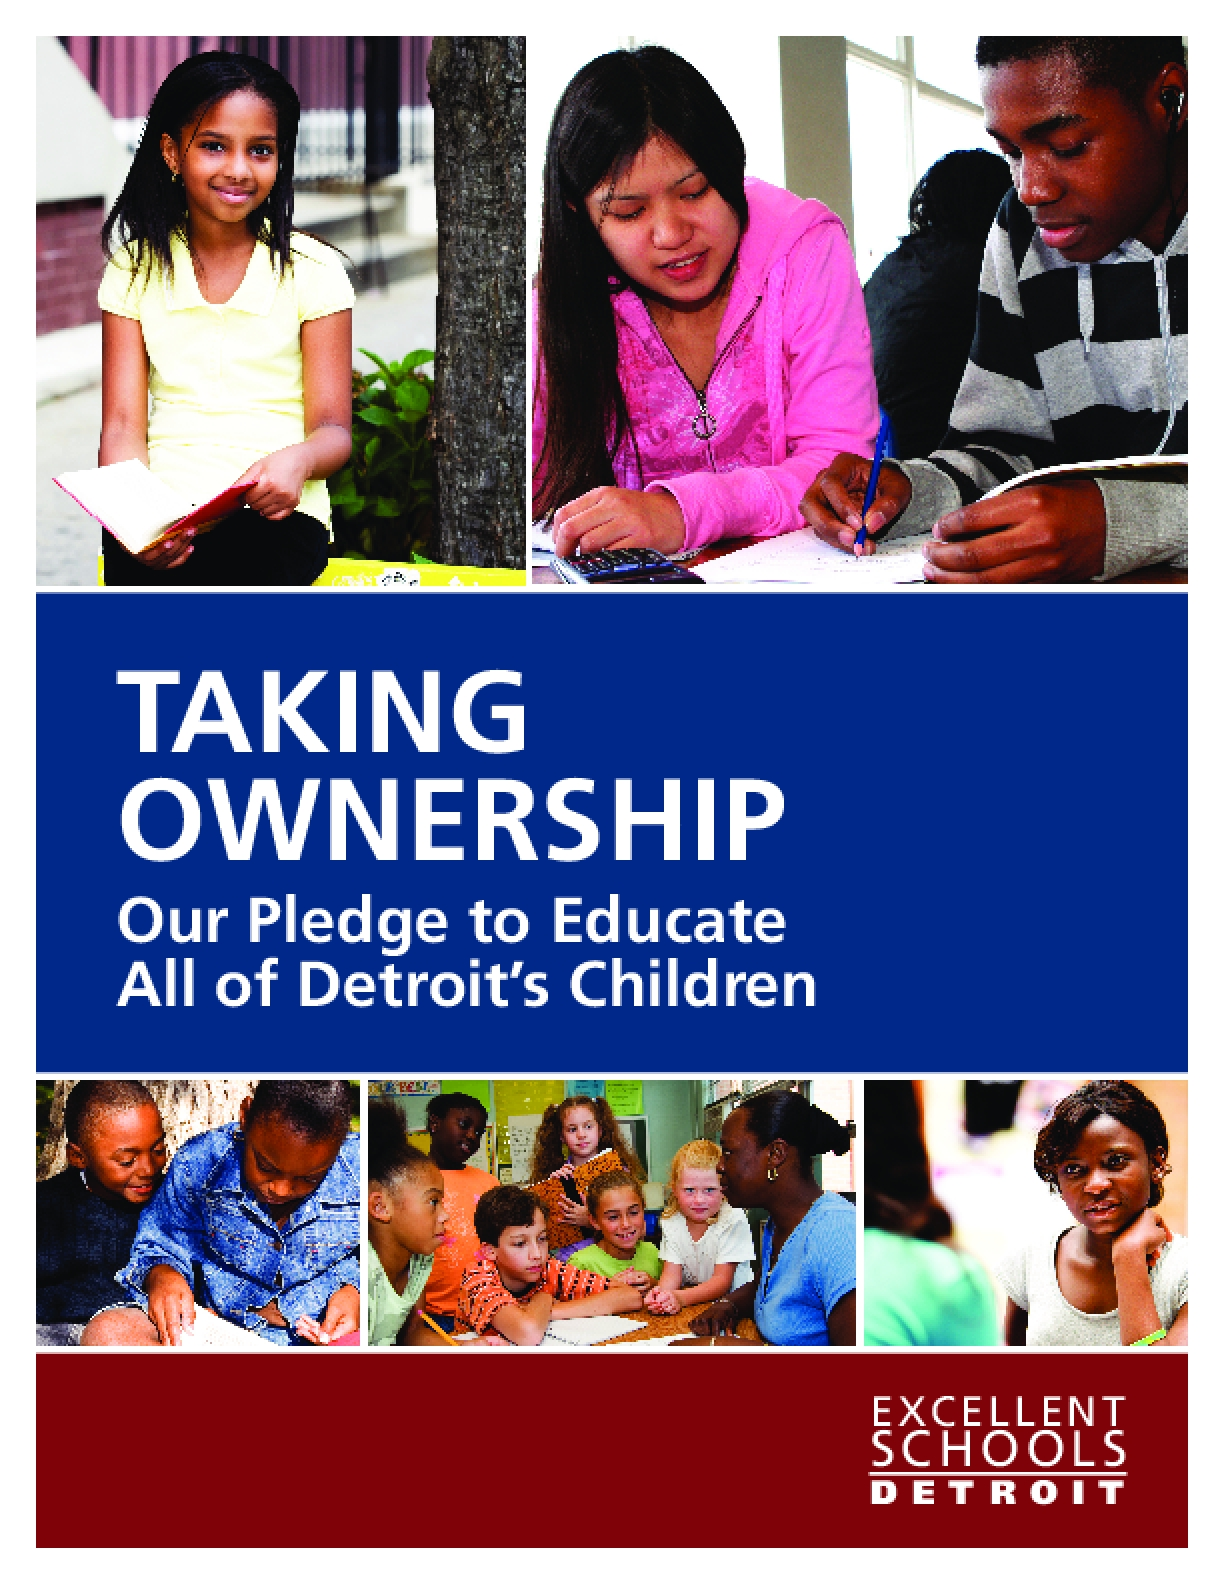 Taking Ownership: Our Pledge to Educate All of Detroit's Children